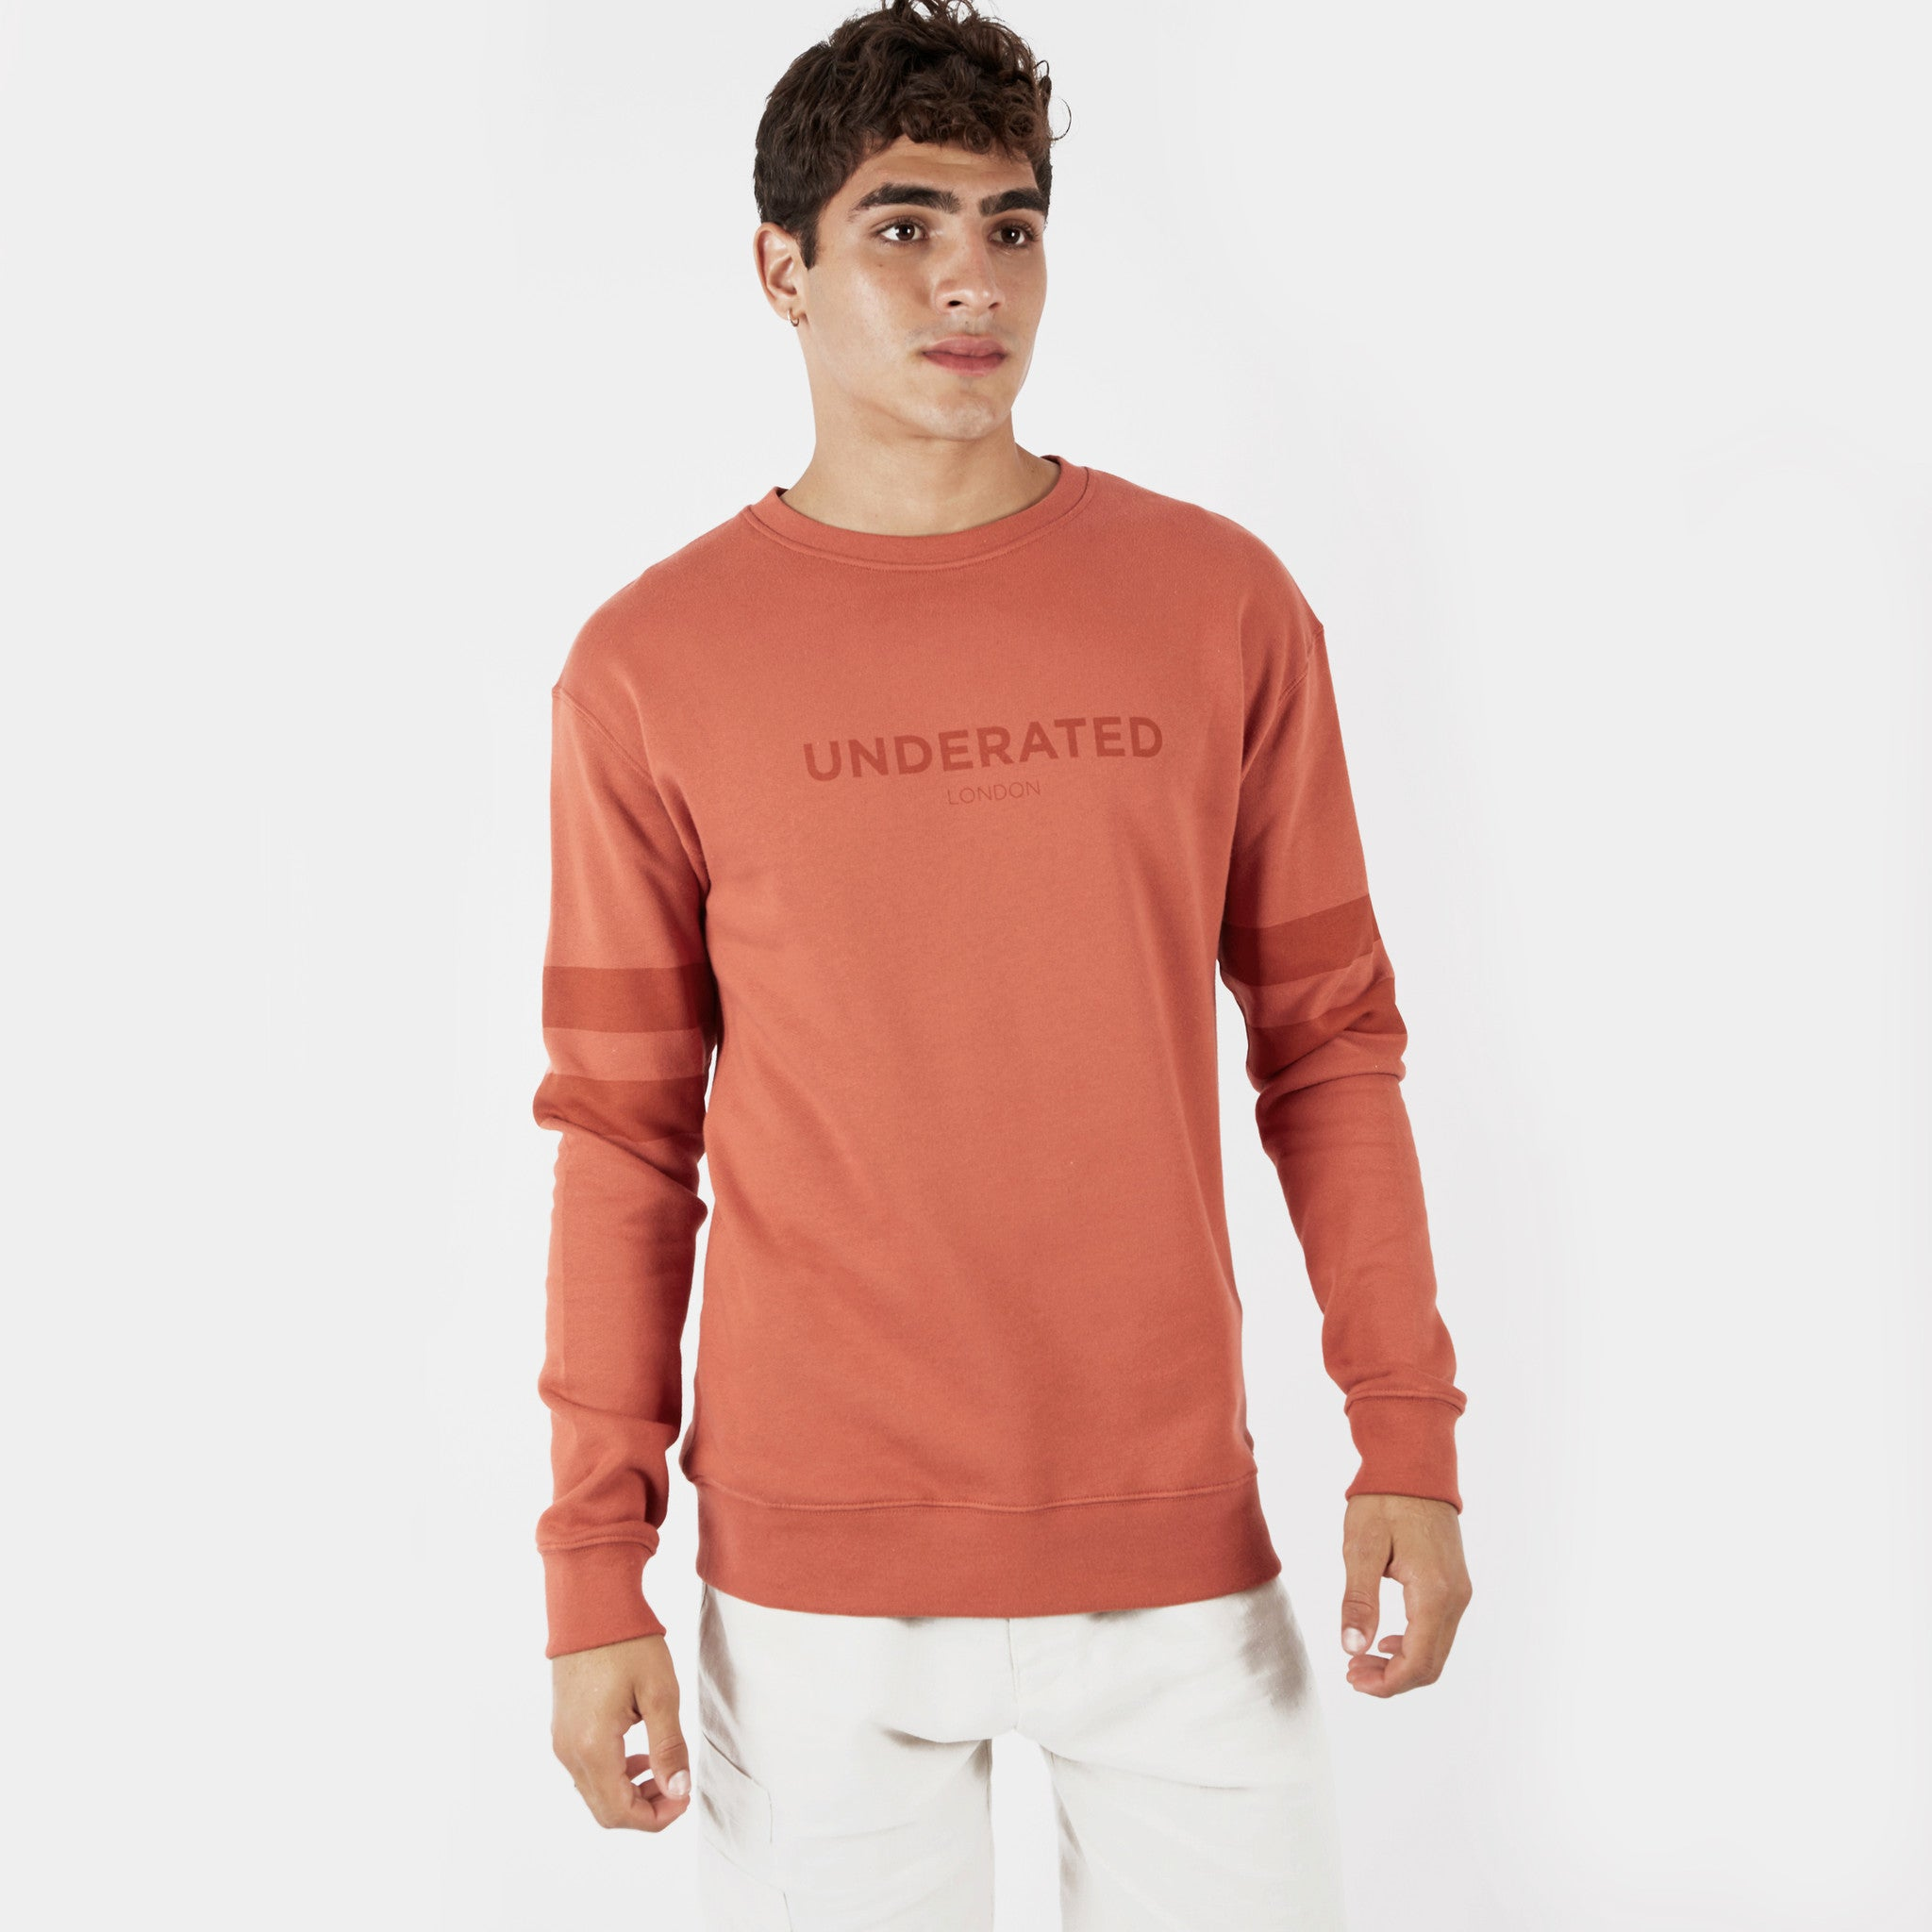 SW400 Tonal Print Sweatshirt - Rust - underated london - underatedco - 1